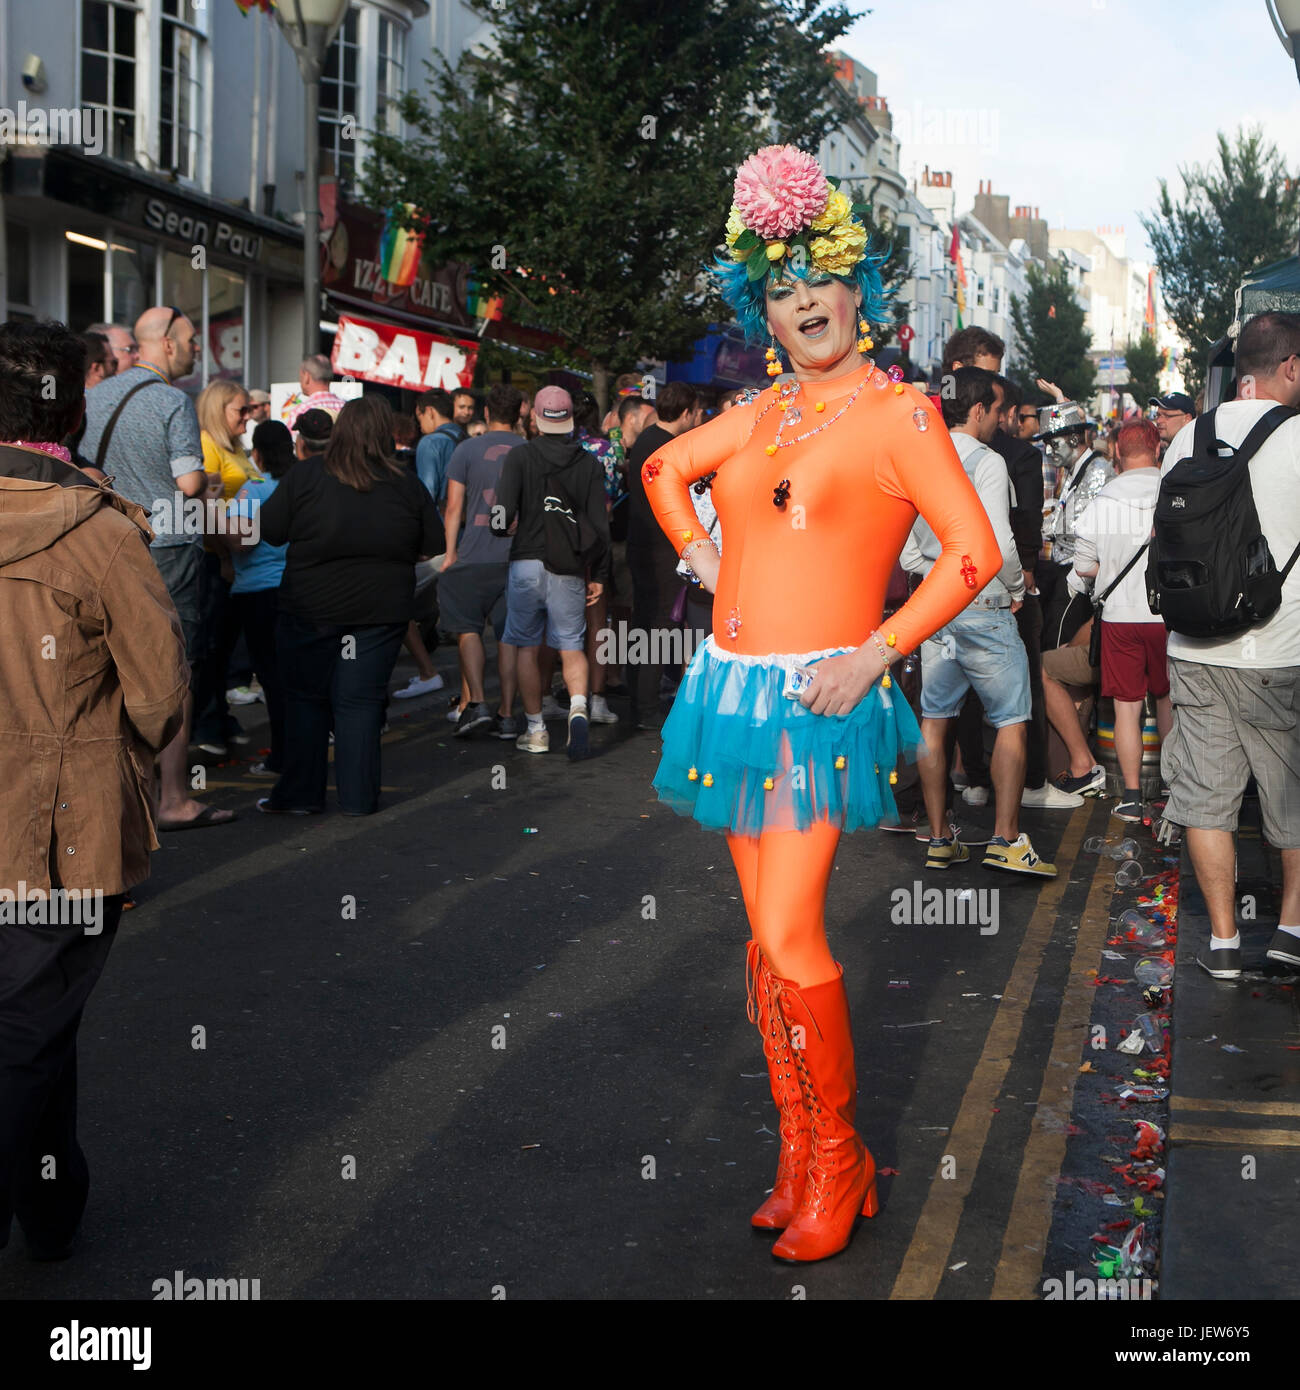 Transvestites In Brighton